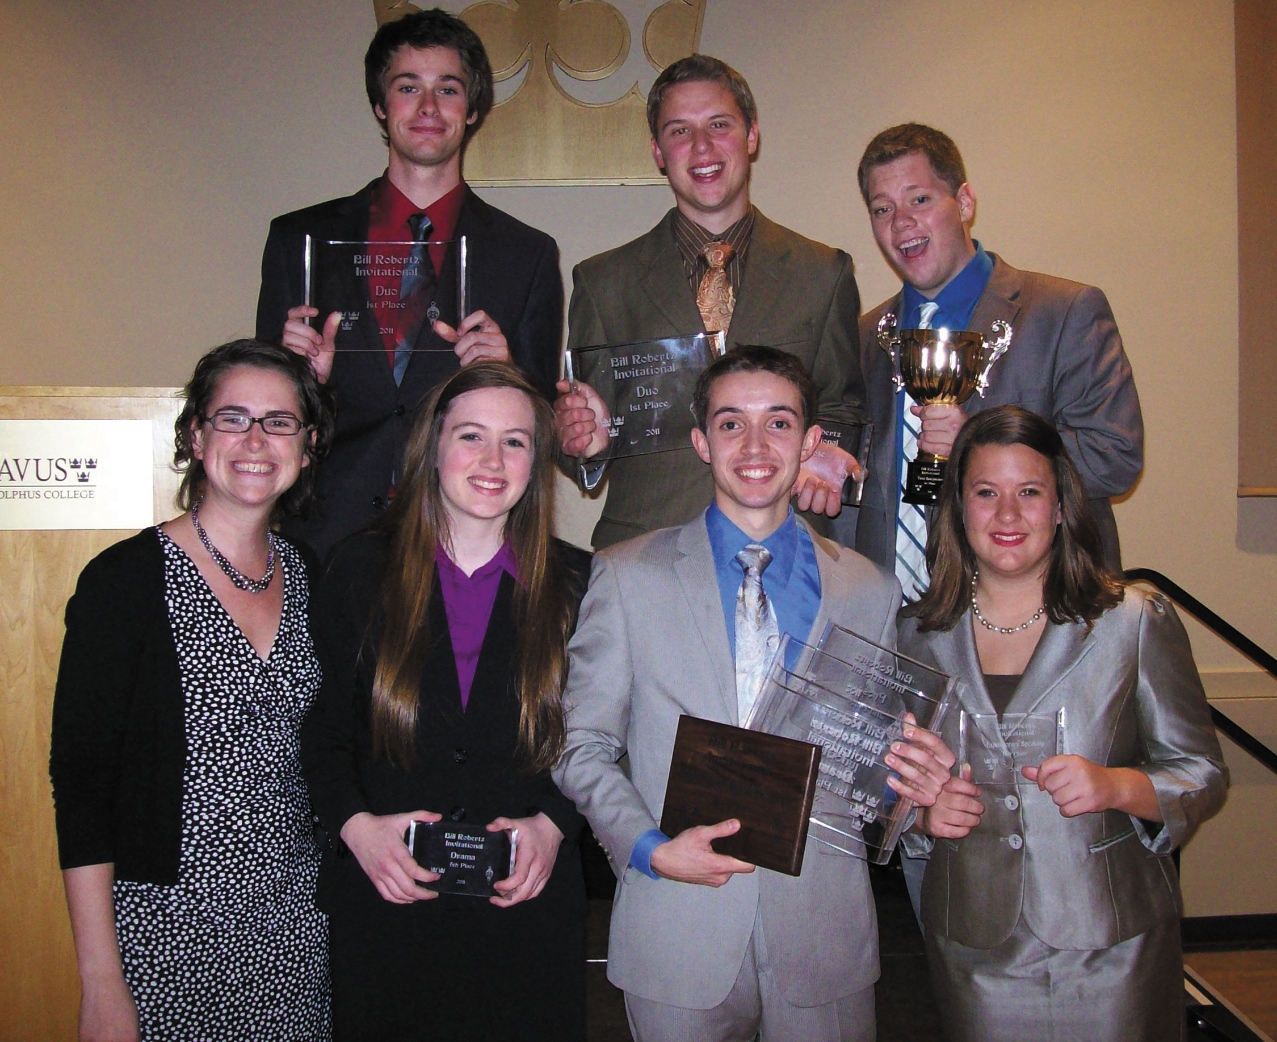 Submitted Photo. Members of the forensics team show off their awards after their competition at Minnesota State University - Mankato and Gustavus Adolphus College on Oct. 16. The speech team took first place.